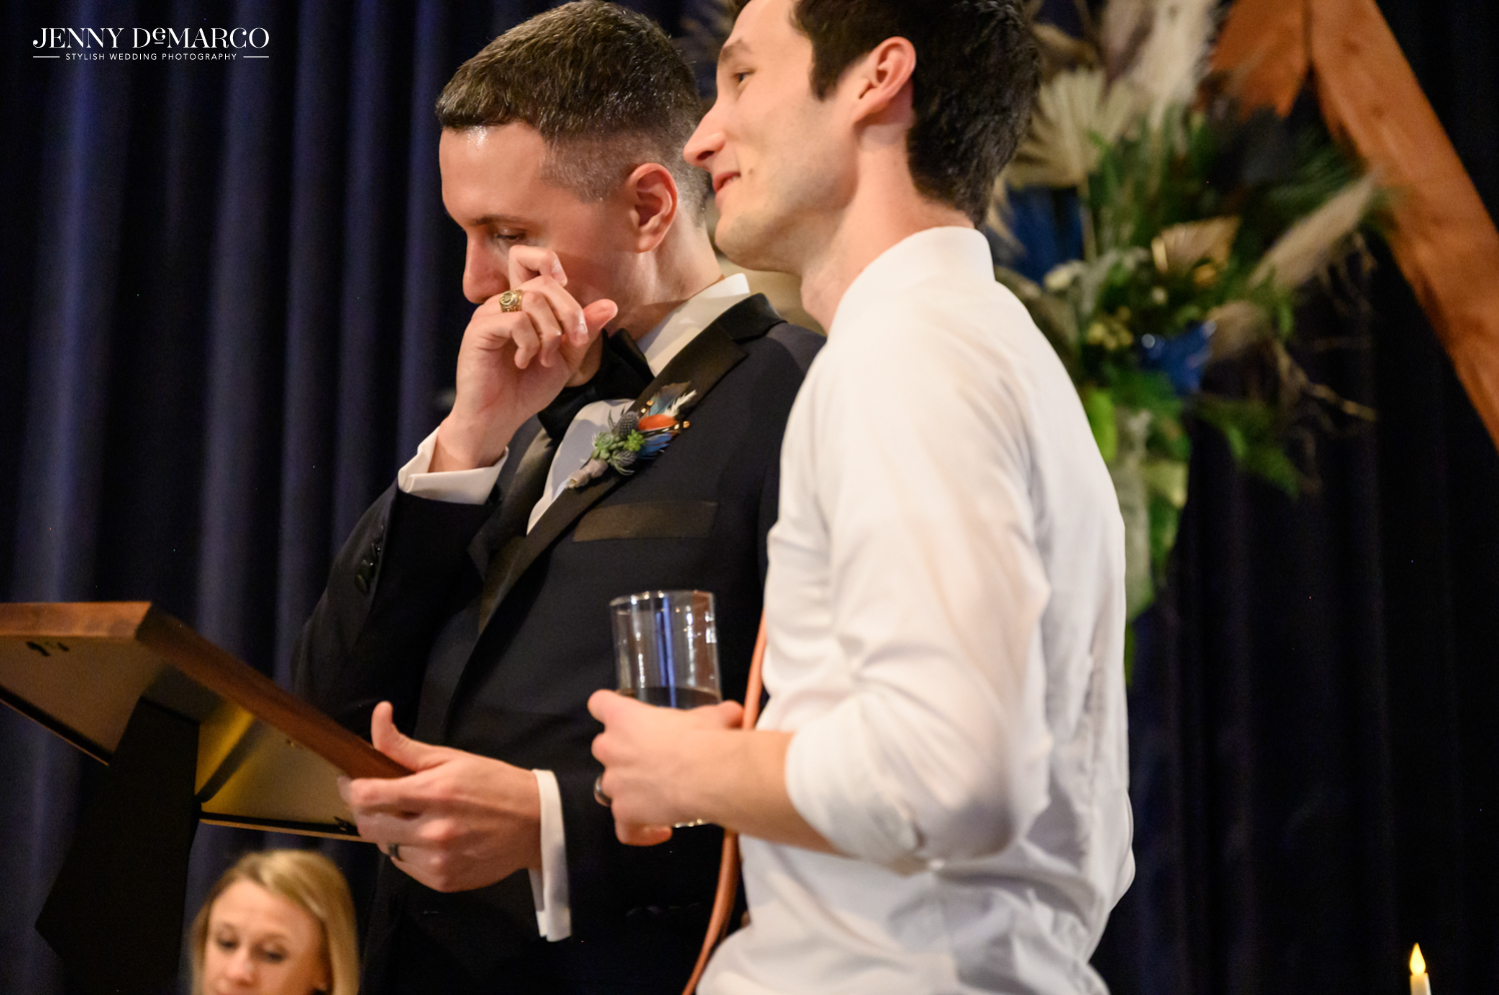 Grooms looking at framed gift and wiping a tear